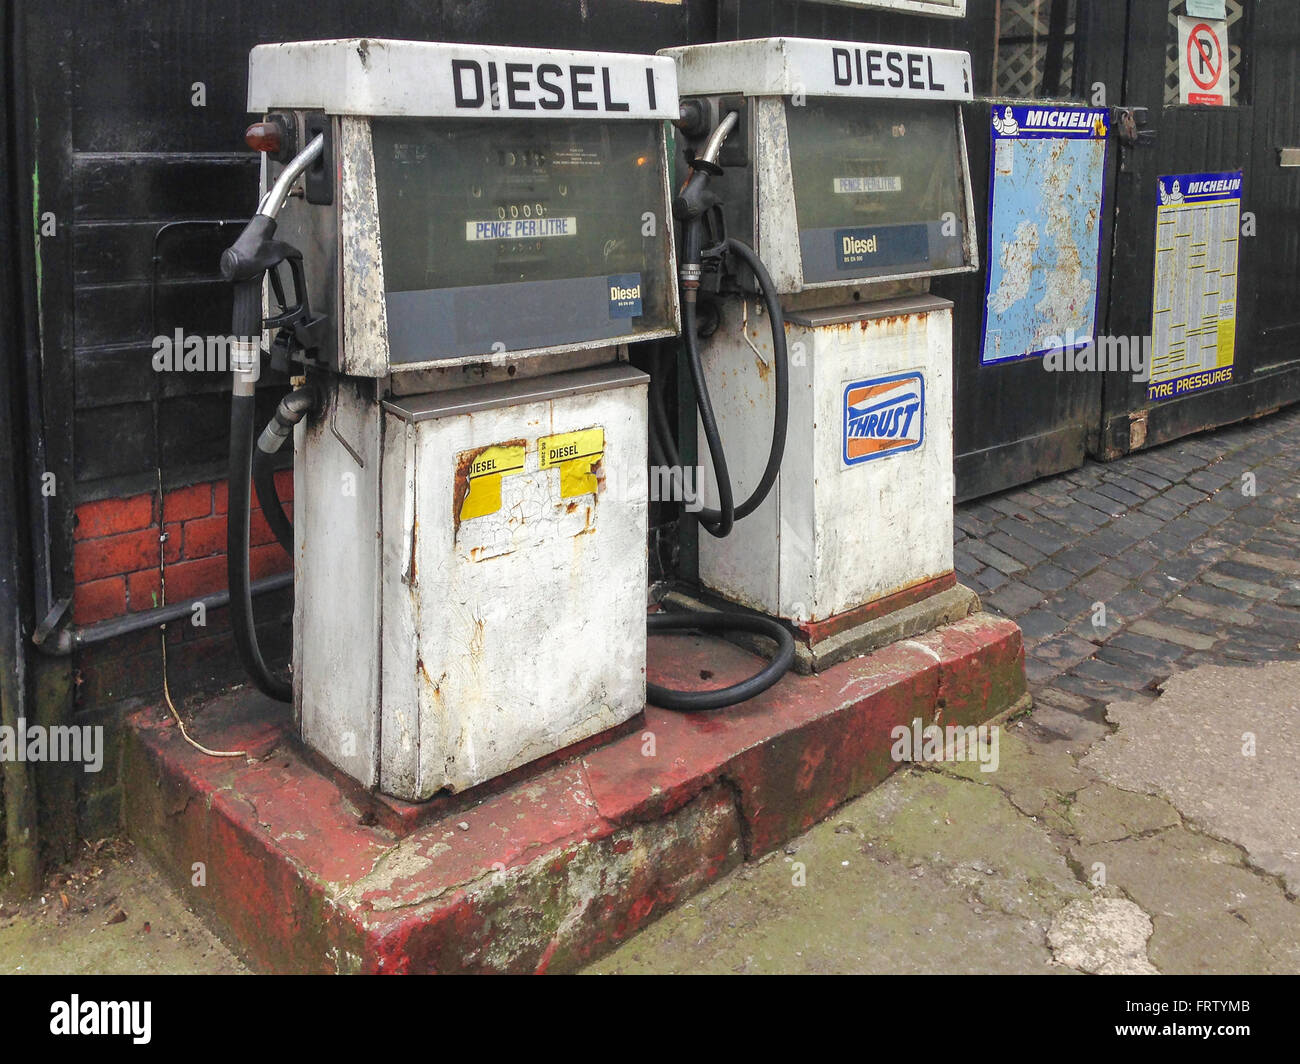 pair of old fashioned diesel pumps. - Stock Image